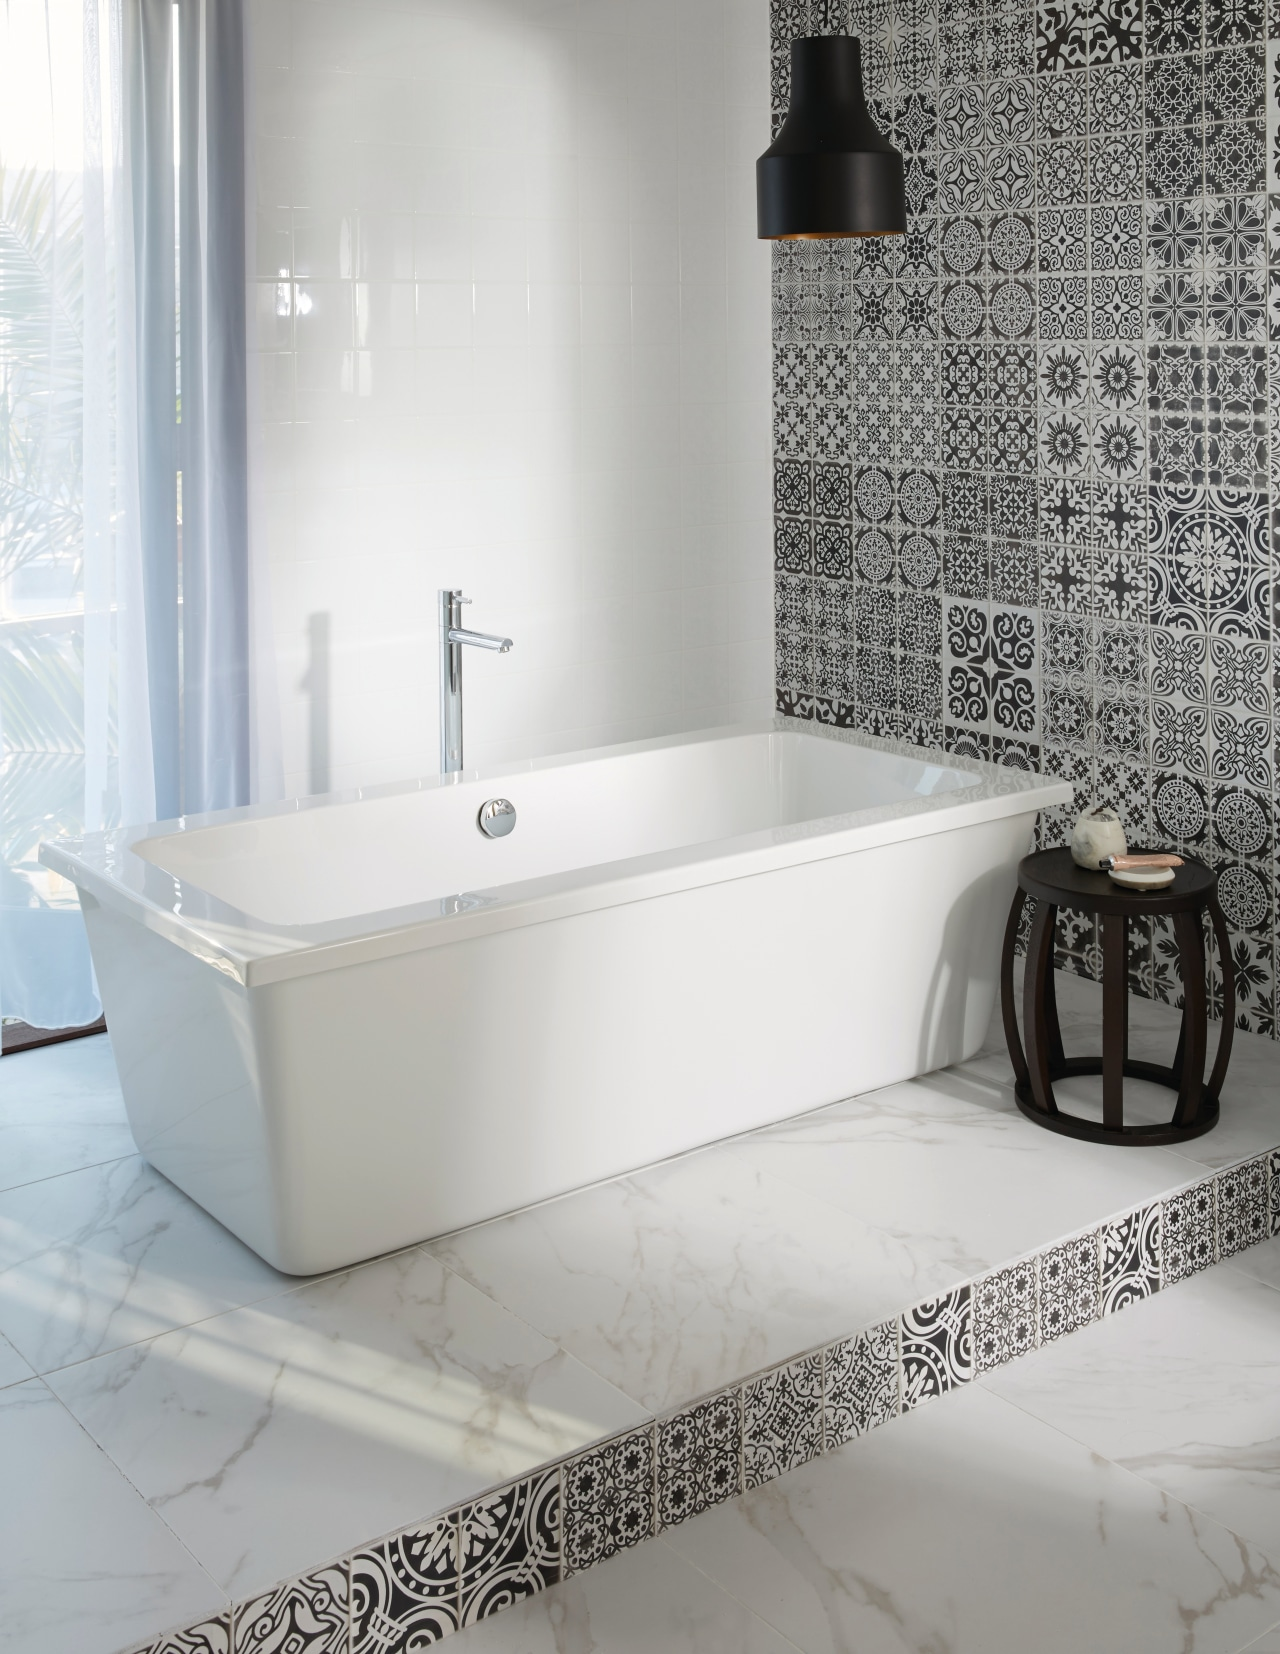 This new bathroom features the Bianco bath by angle, bathroom, bathroom sink, bathtub, ceramic, floor, interior design, plumbing fixture, product, product design, sink, tap, tile, toilet seat, wall, gray, white